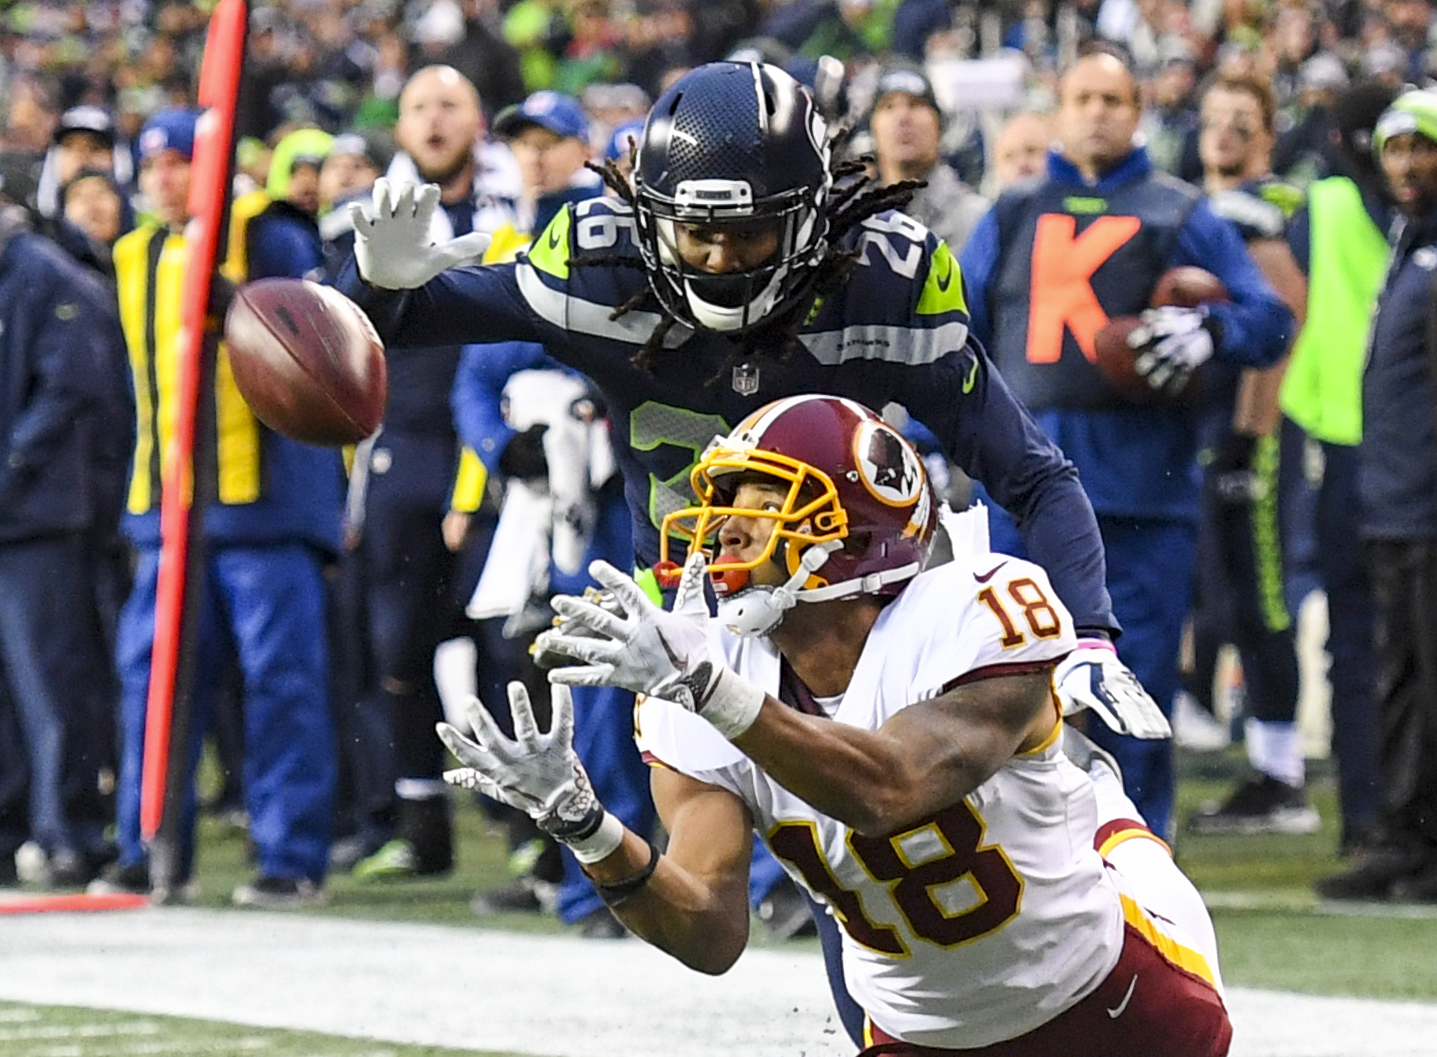 NFL-Washington Redskins at Seattle Seahawks